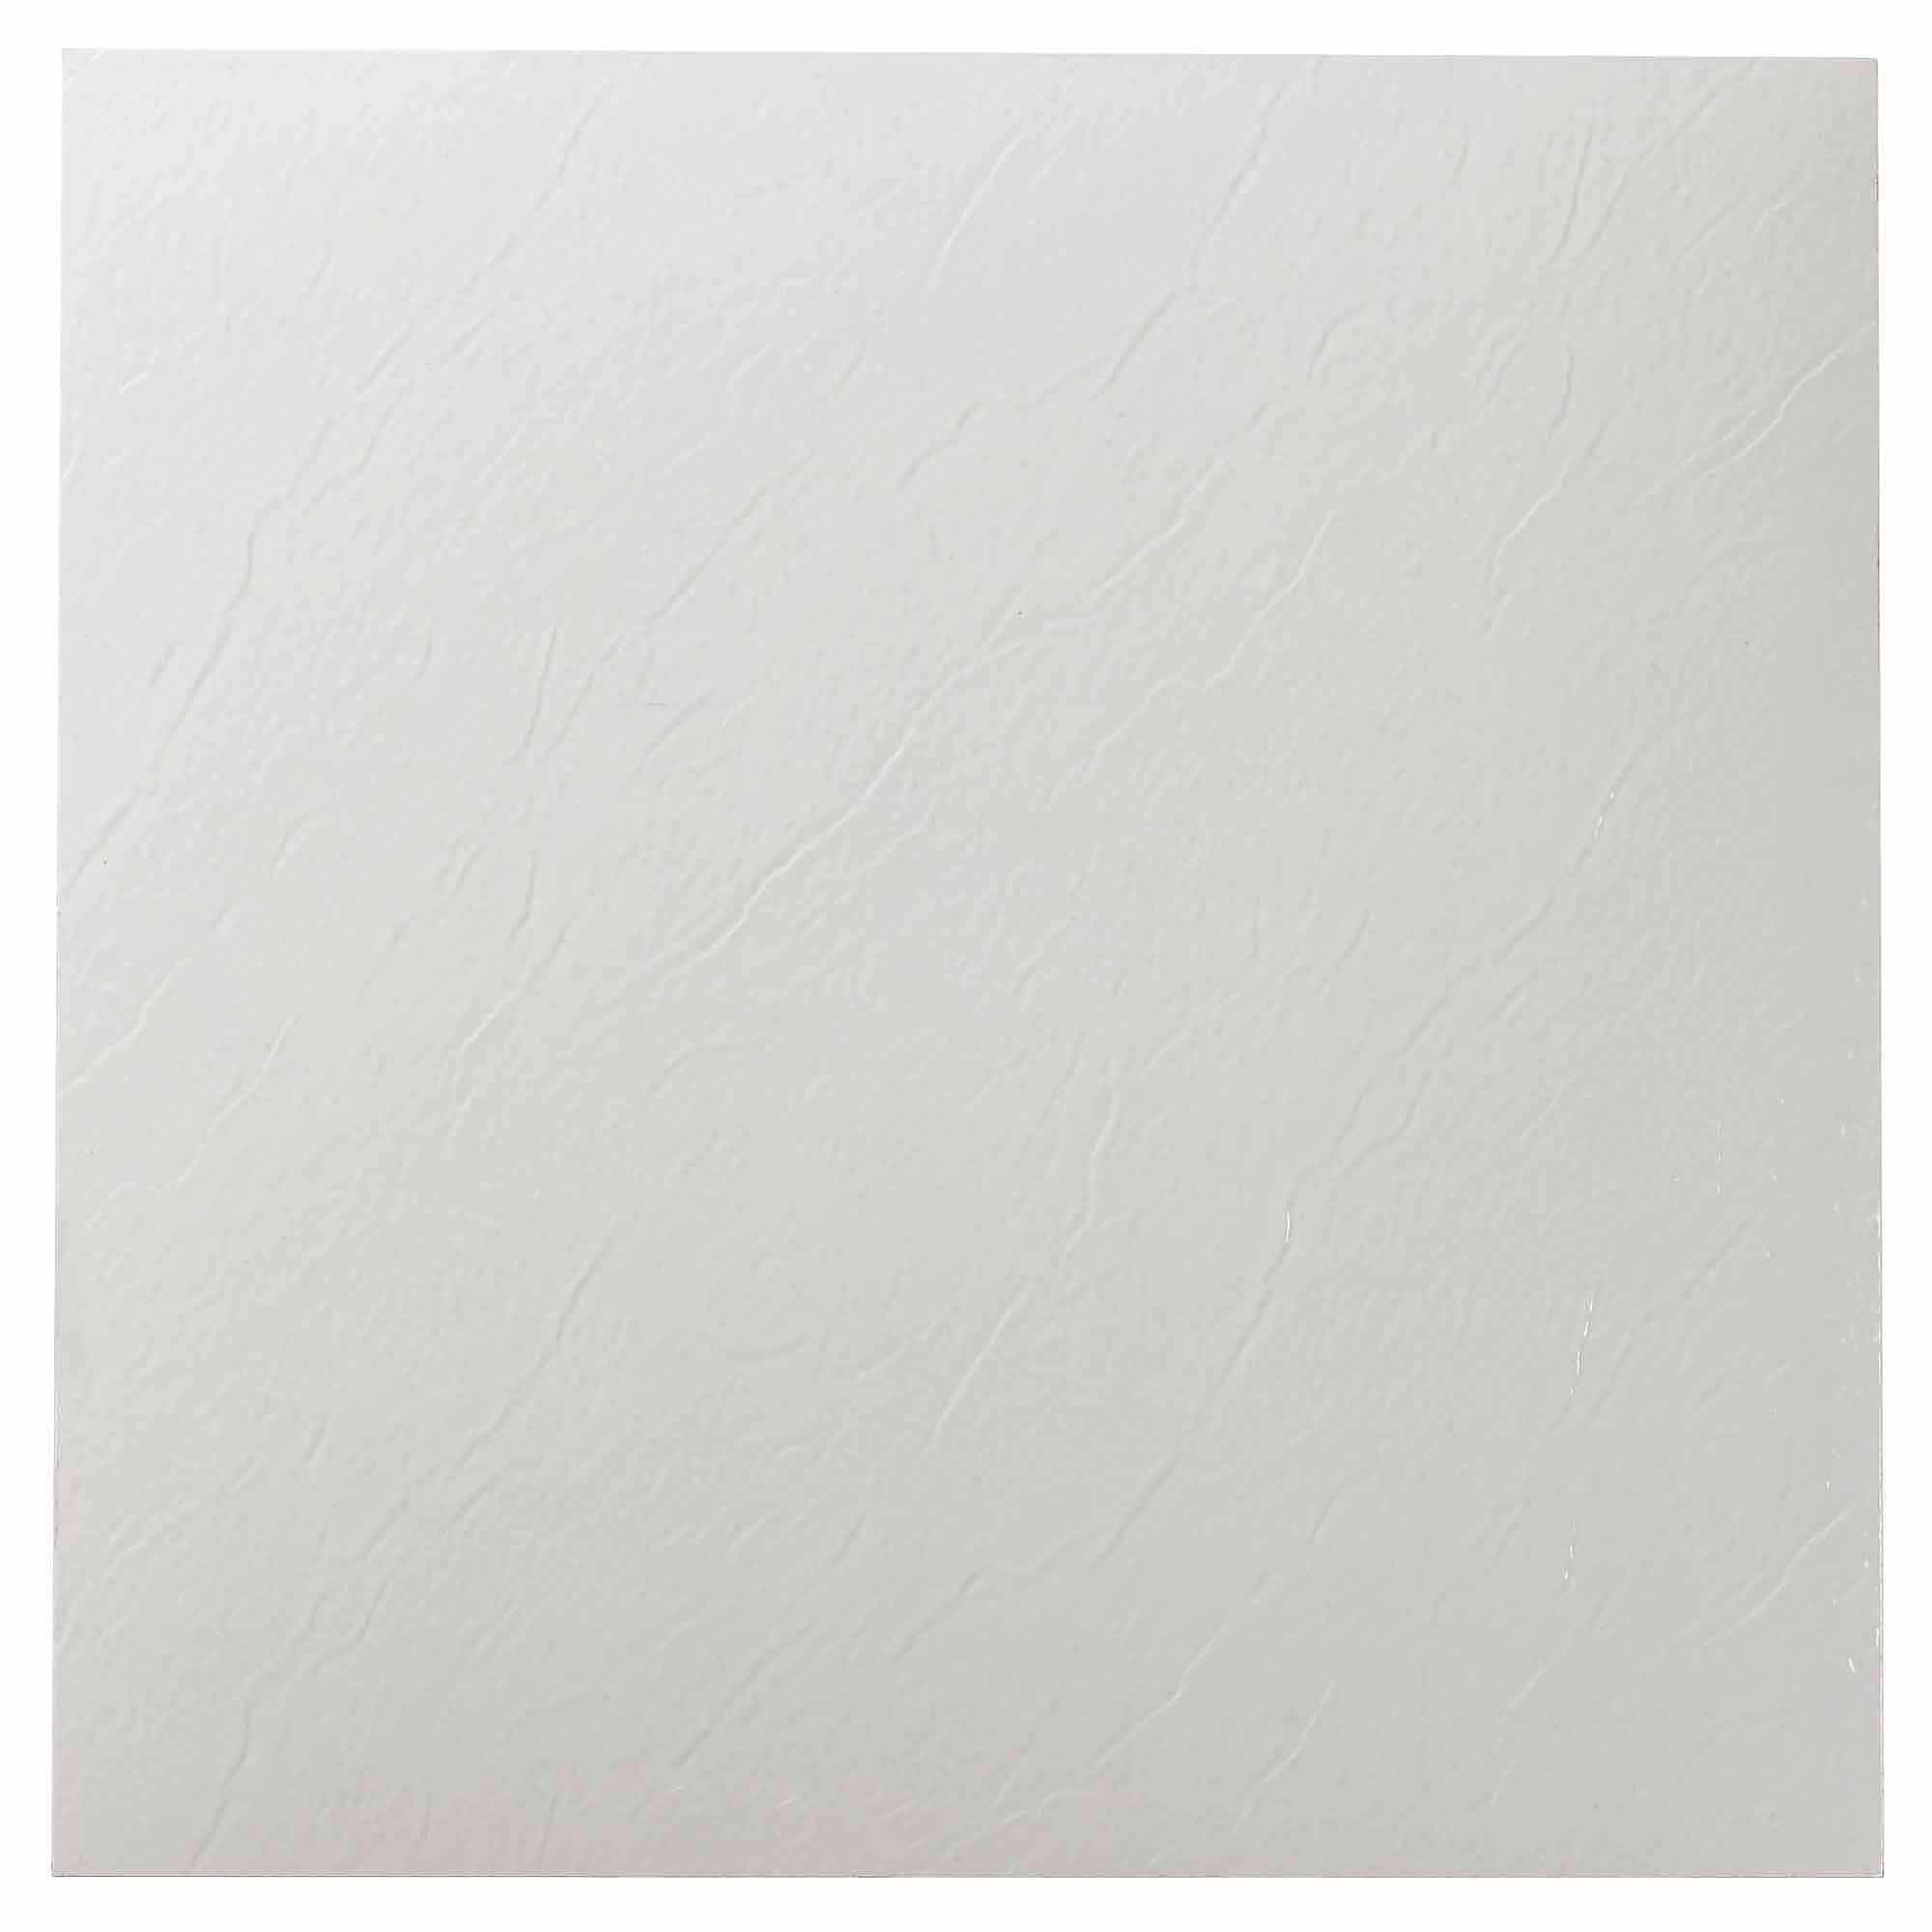 Self adhesive floor tiles nexus white 12x12 self adhesive vinyl floor tile 20 tiles20 sqft dailygadgetfo Image collections